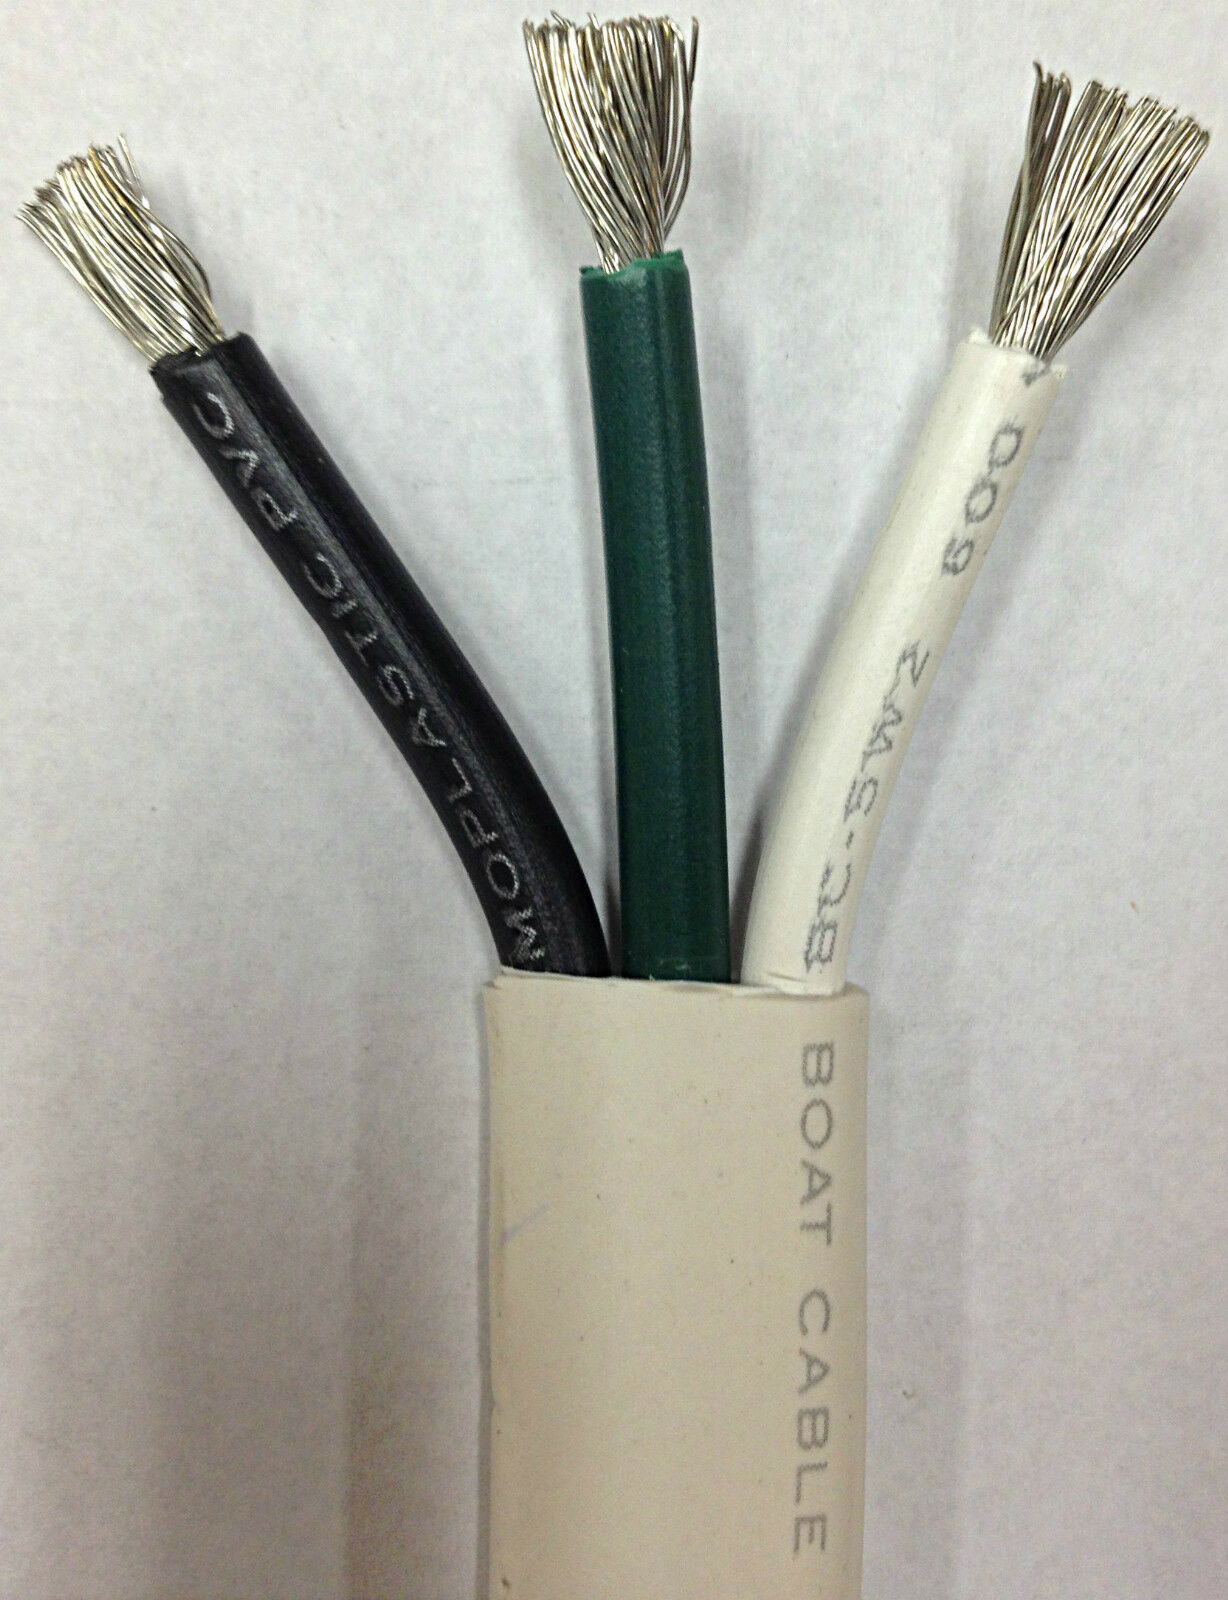 10/3 AWG Gauge Marine Wire Tinned Copper Boat Cable Triplex UL1426 Made in USA Apparel, Protective Gear & Merchandise